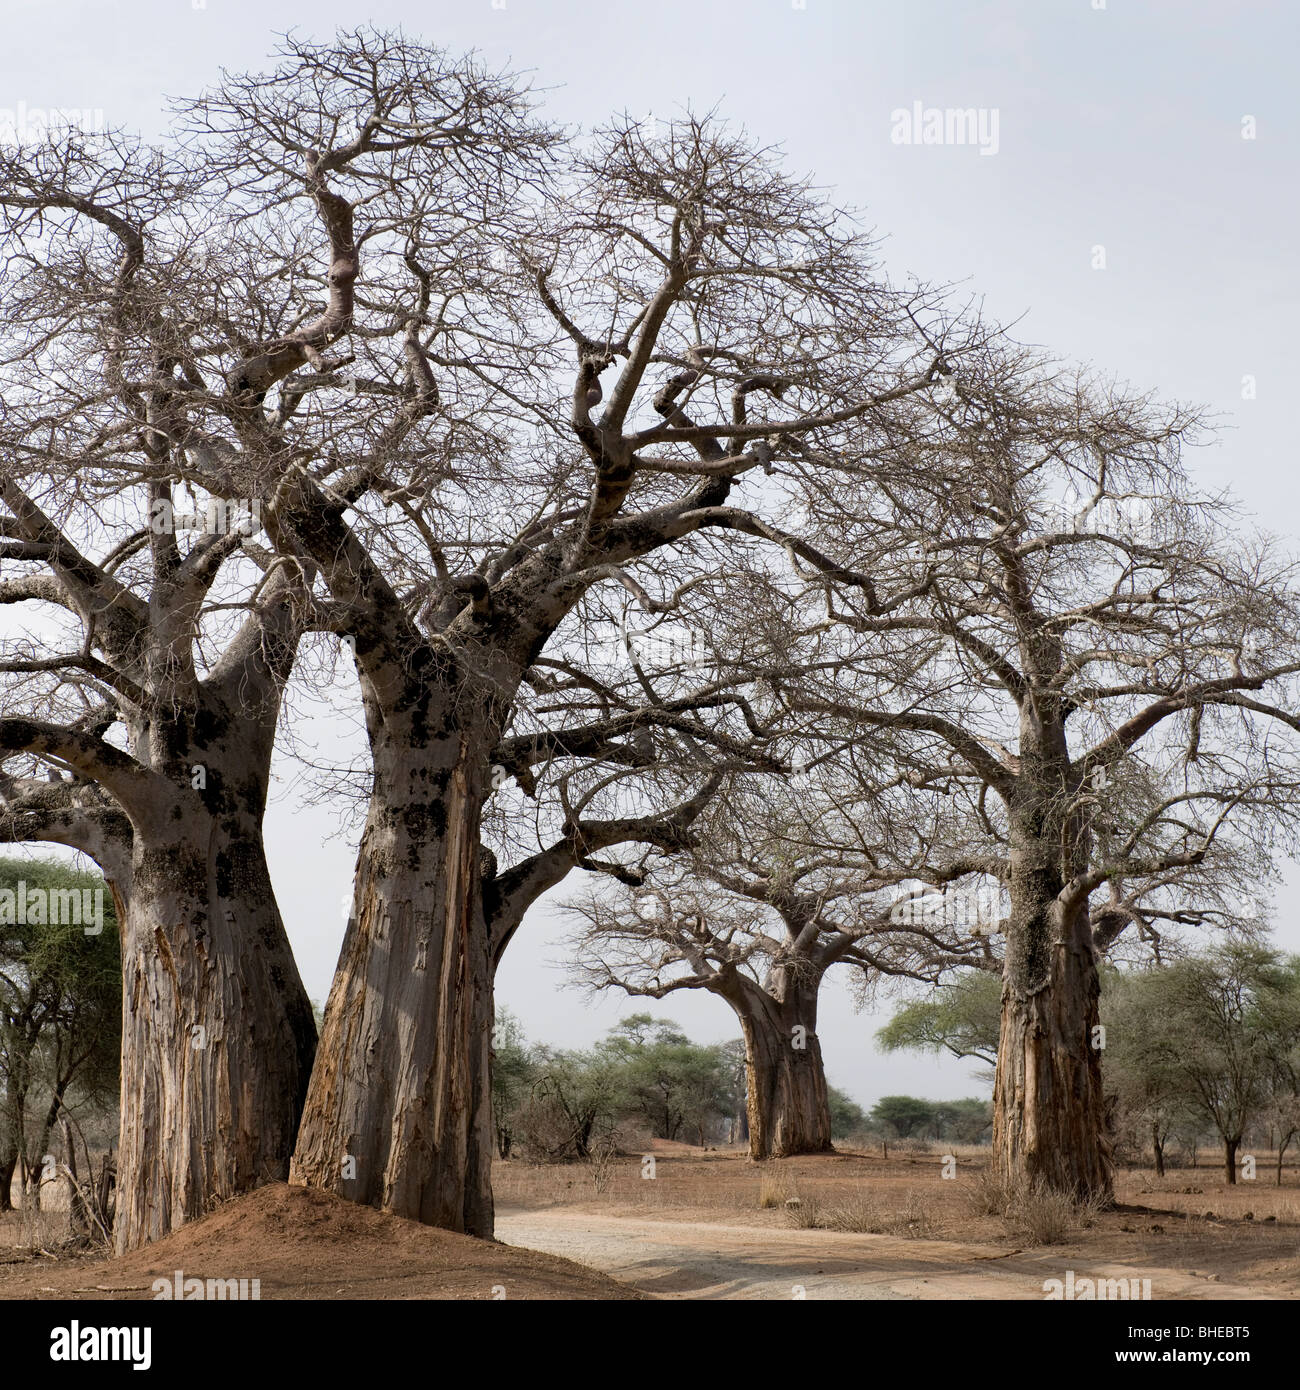 Scenic view of large trees in Africa - Stock Image